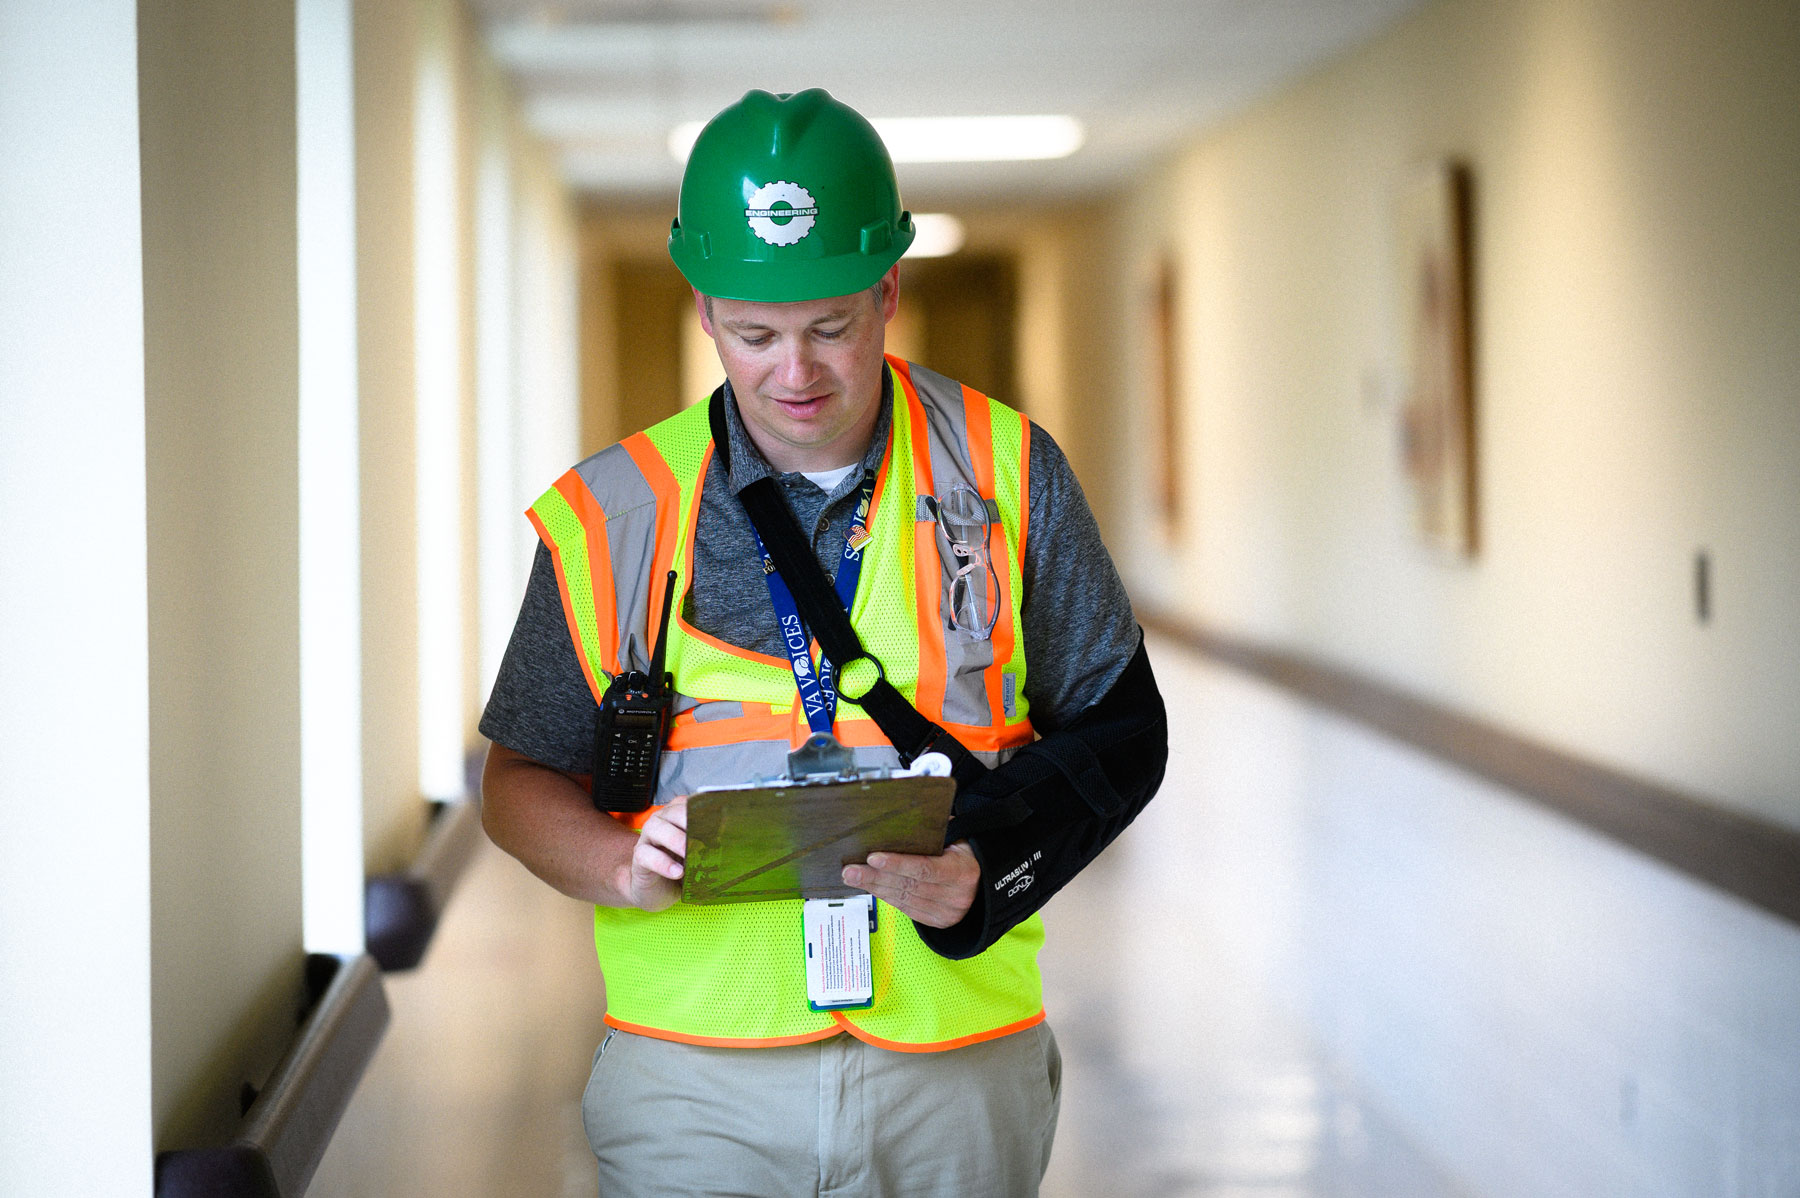 Leonard walks down a hall with a clipboard while wearing a safety vest and construction helmet.